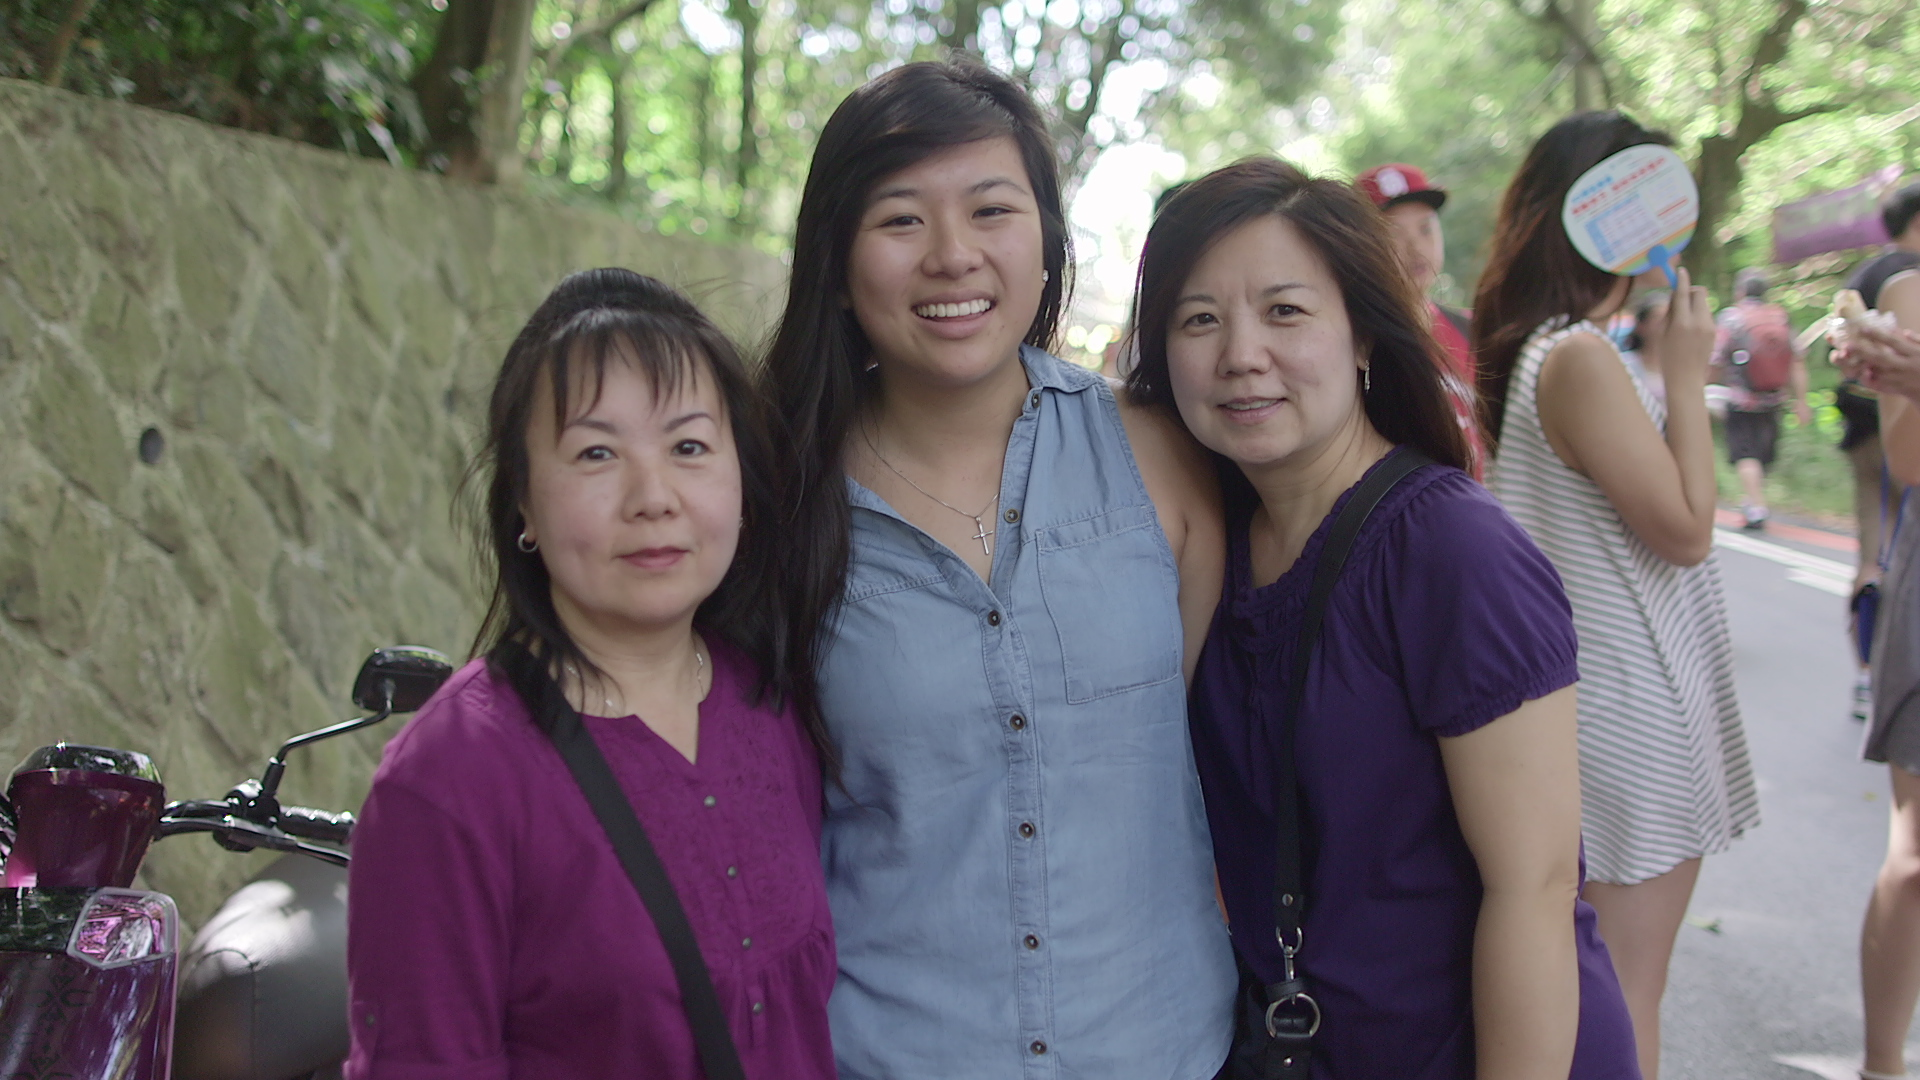 Josephine, Auntie Yann, and Auntie Julie share a beautiful moment together as they search through the MaoKong Outdoor Market.